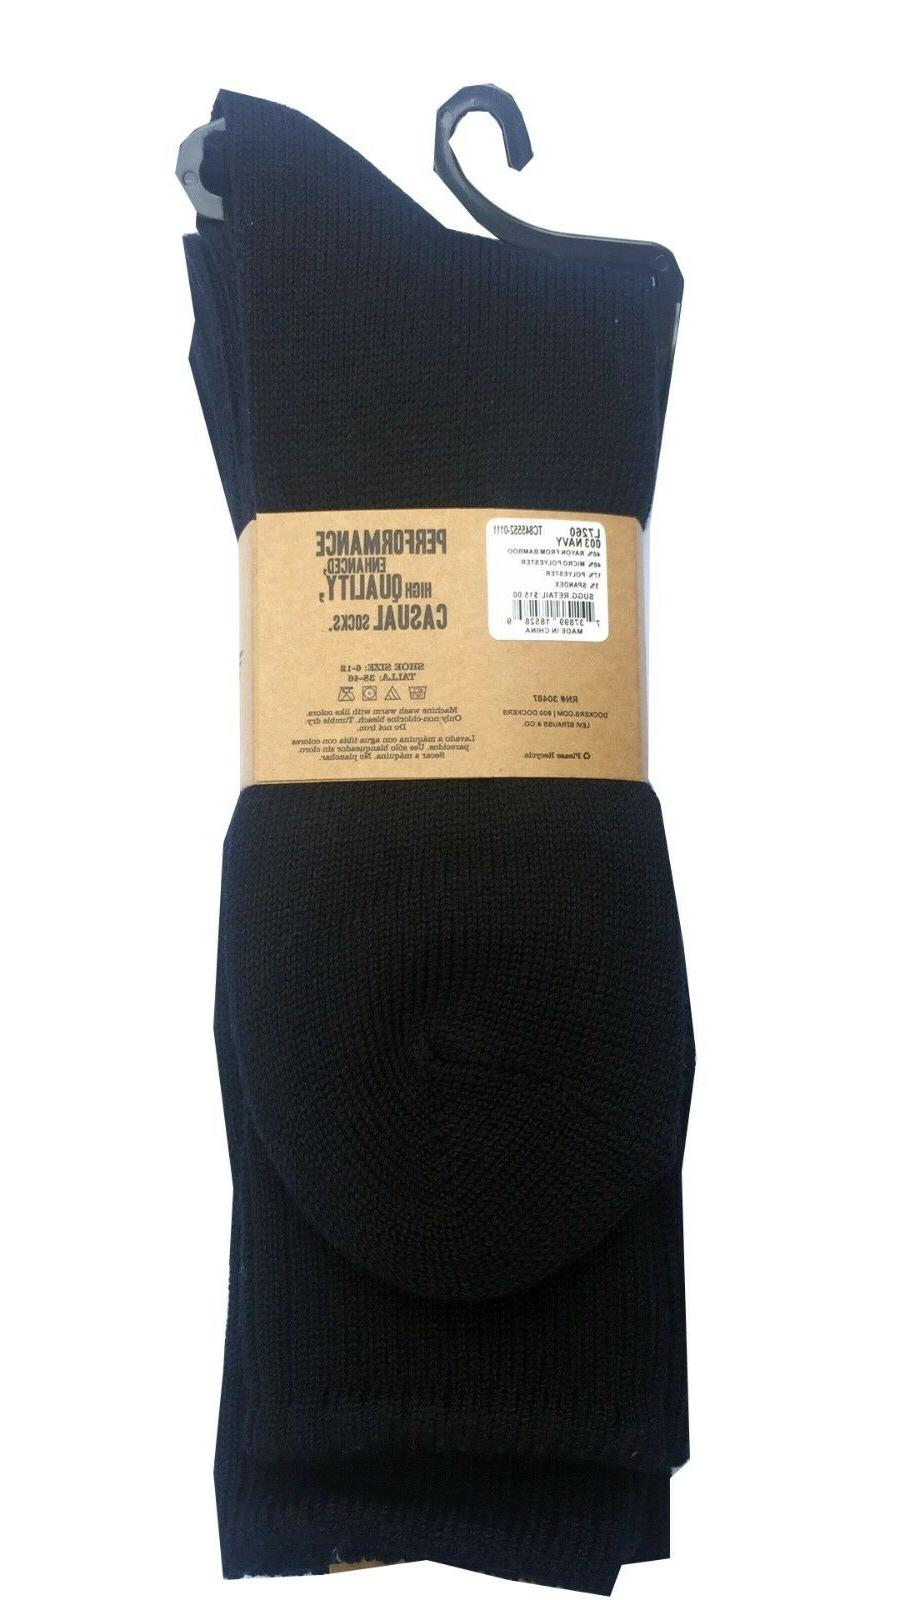 DOCKERS Blue Socks 3-Pack Fit 6-12 ""